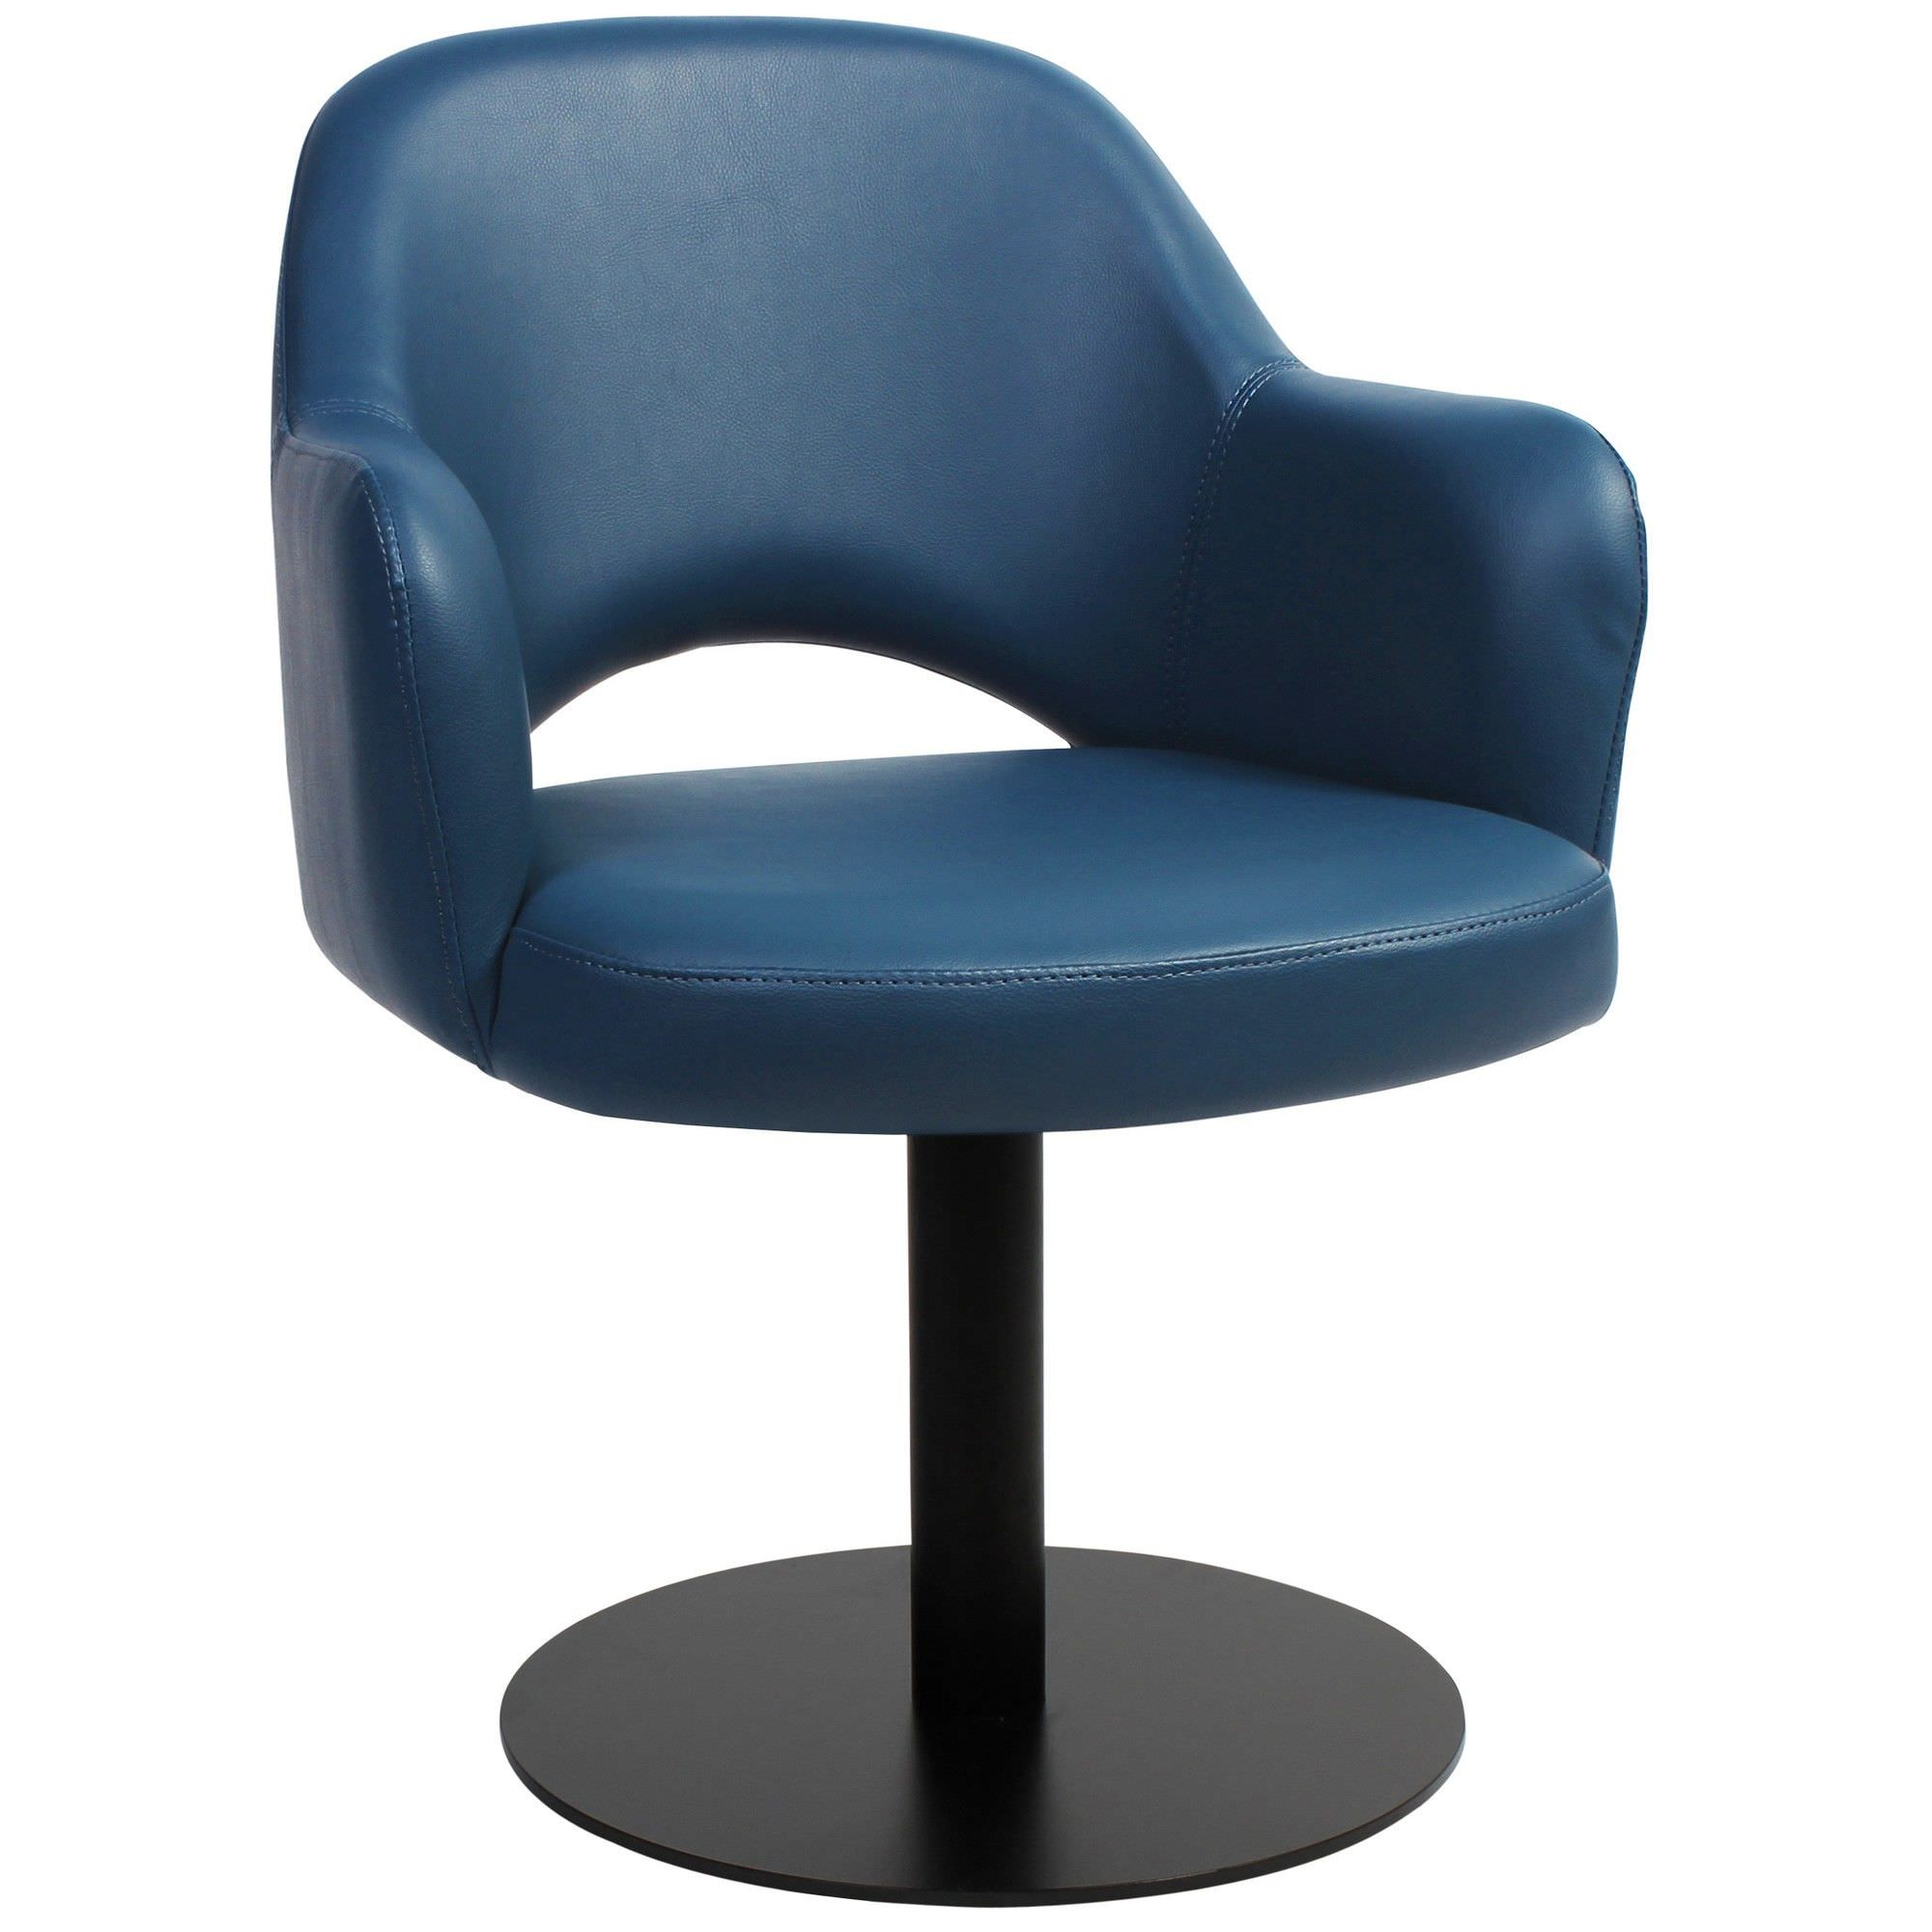 Albury Commercial Grade Vinyl Dining Stool with Arm, Metal Disc Base, Blue / Black